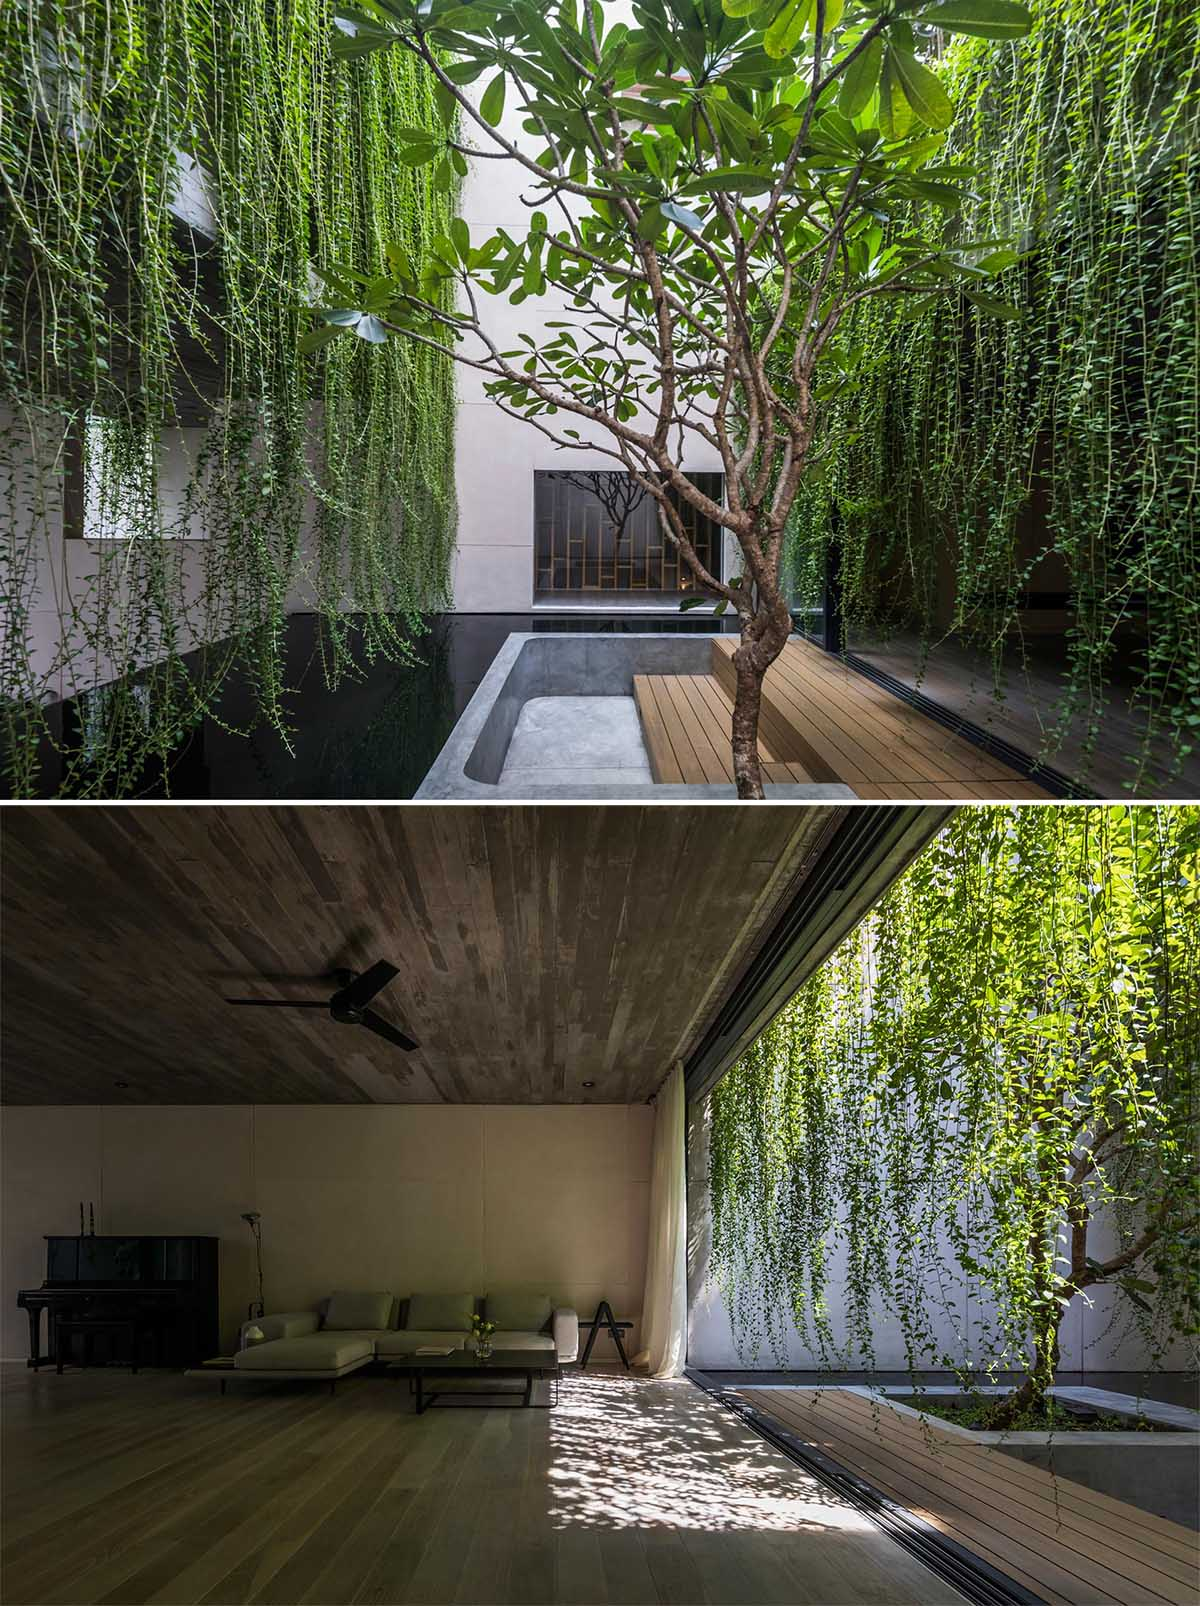 A modern house with overhanging plants.